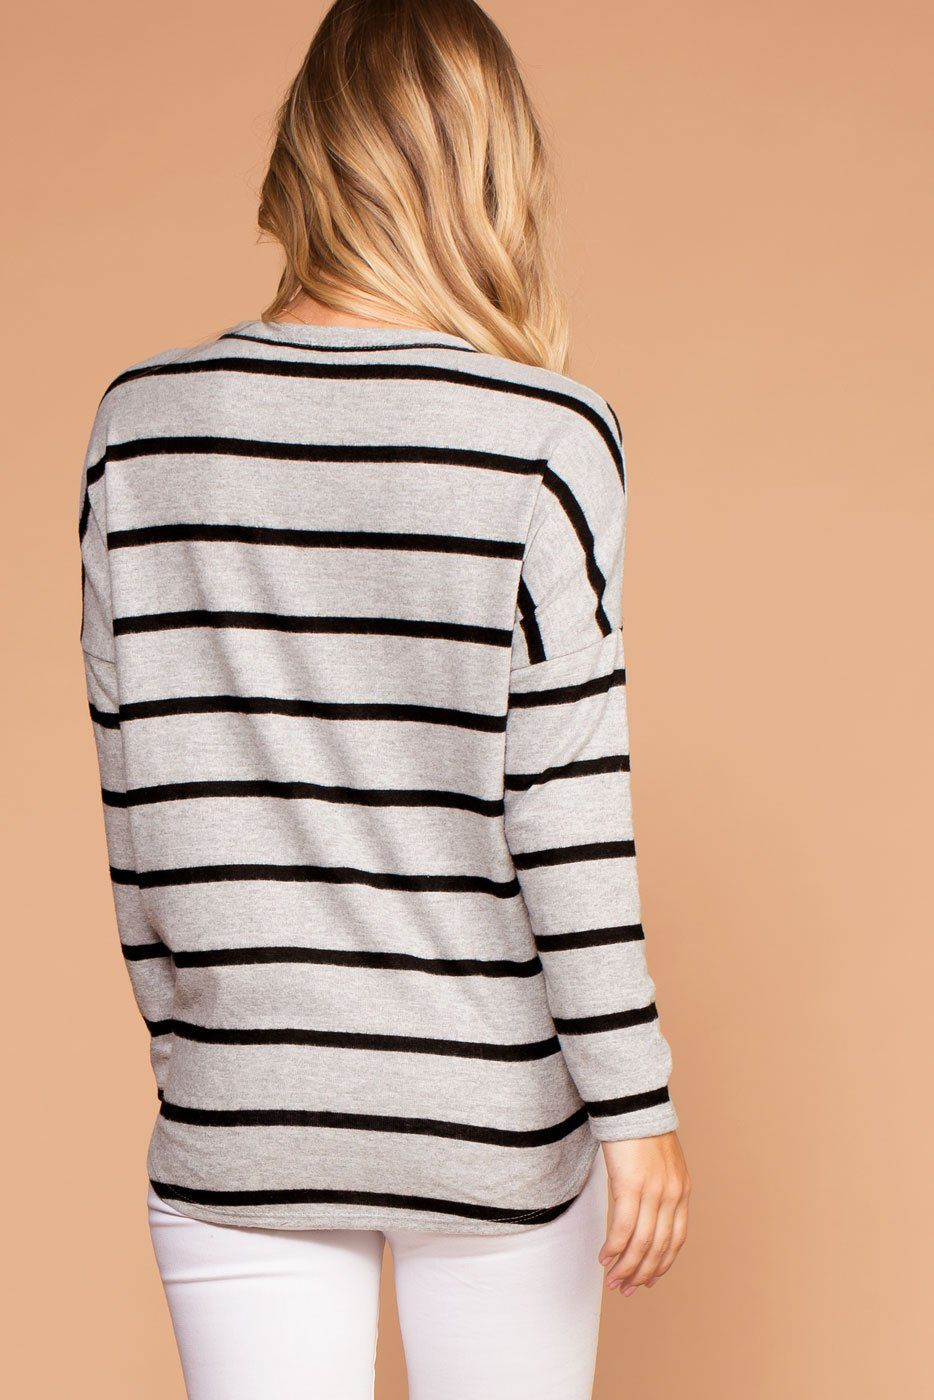 Grey and Black Stripe Brushed Knit Tie-Front Sweater